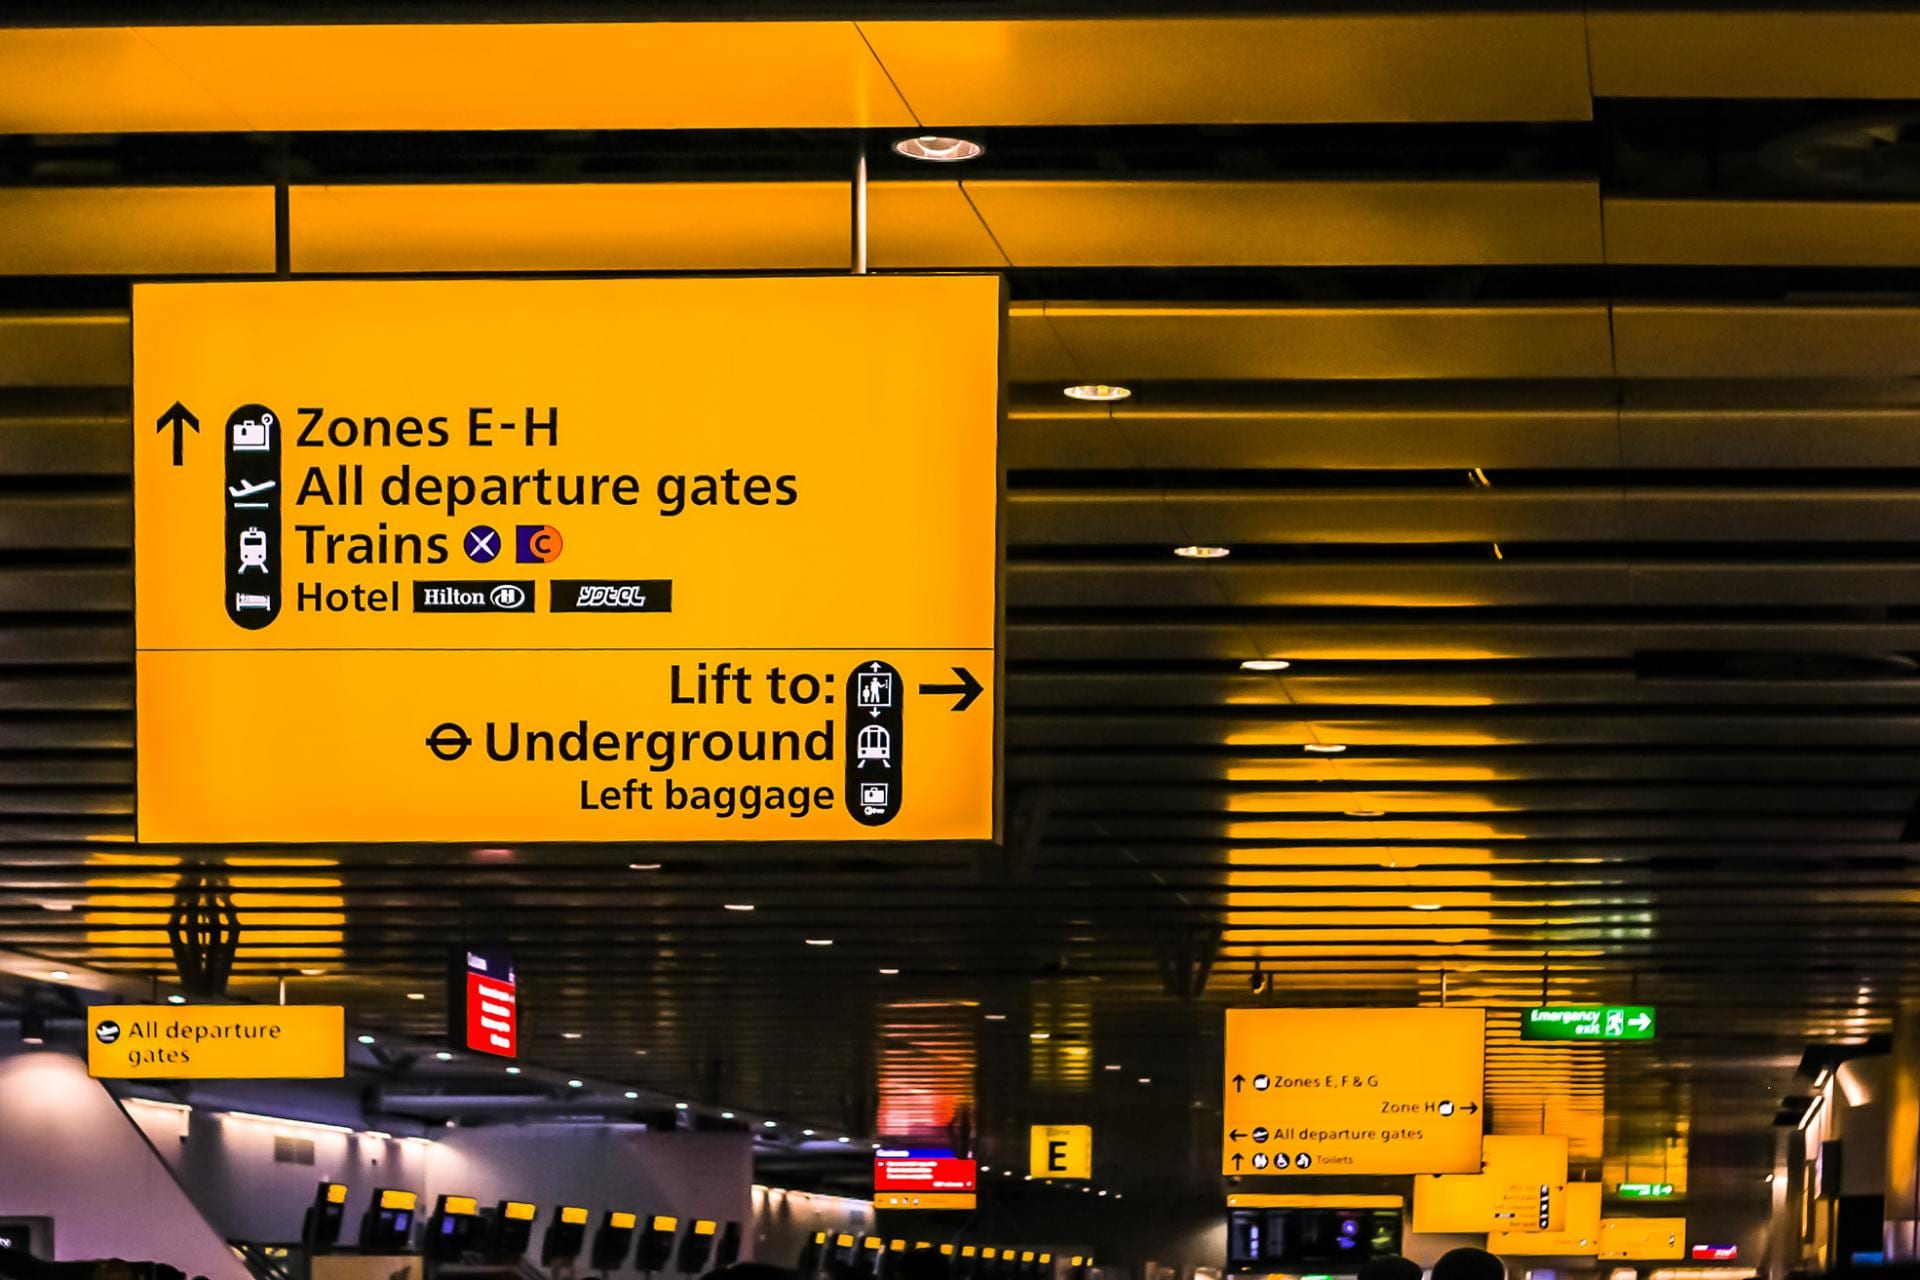 ¿Cómo ir de Heathrow a Londres?